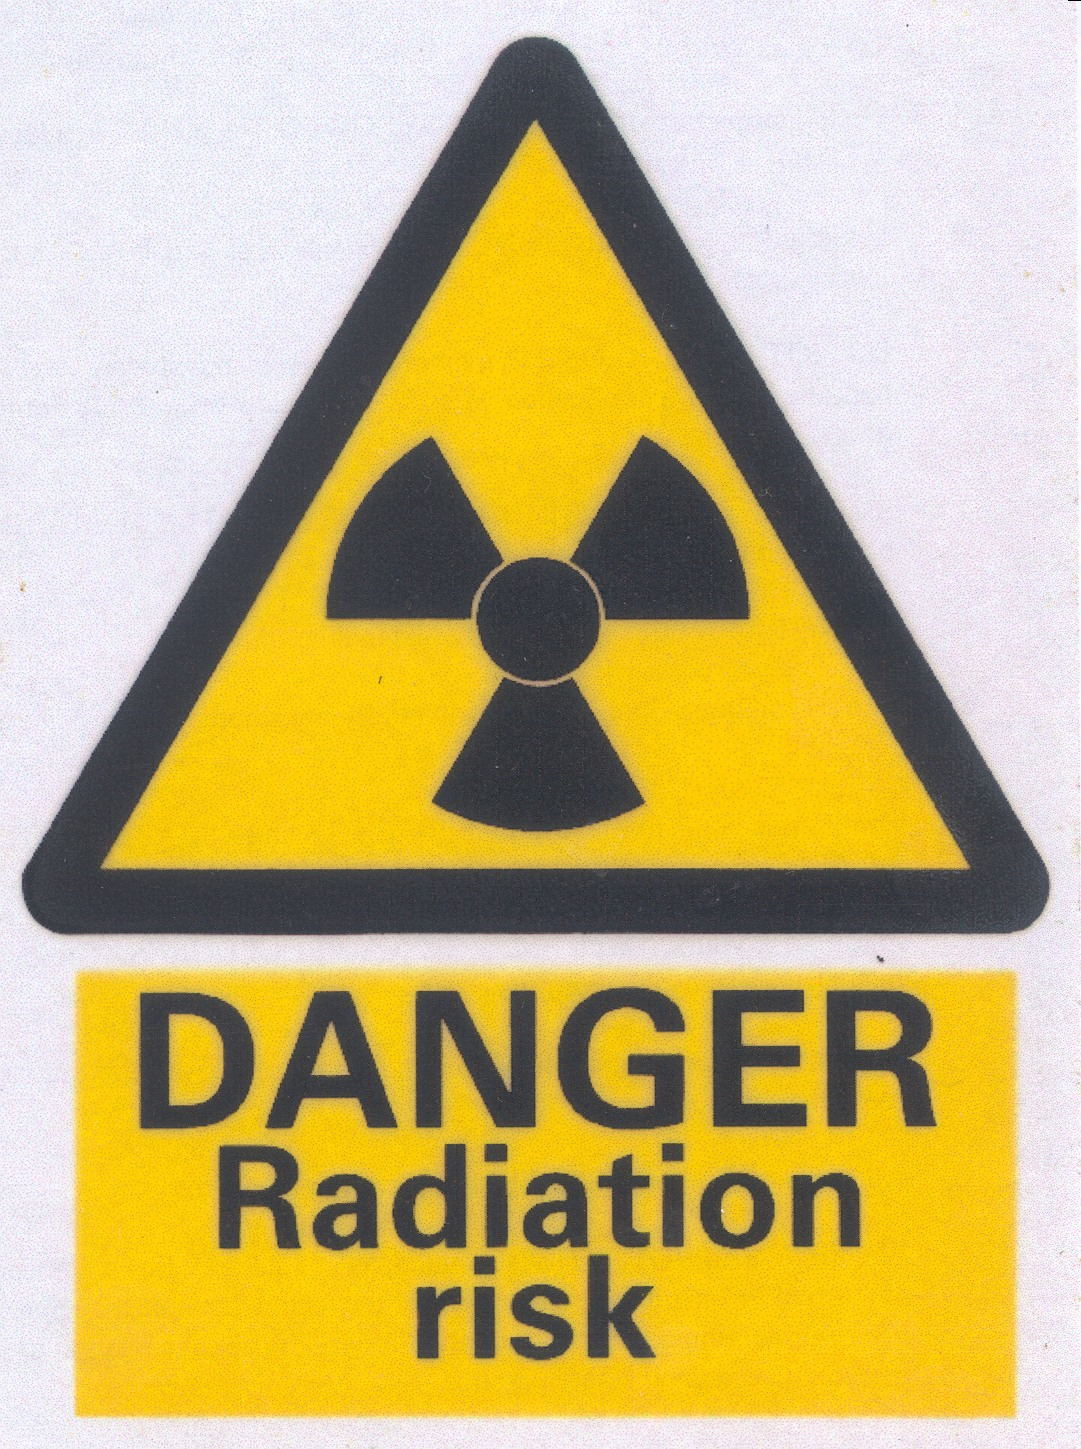 http://www.amitbhawani.com/blog/wp-content/uploads/2010/02/cell-phone-radiation-risk.jpg